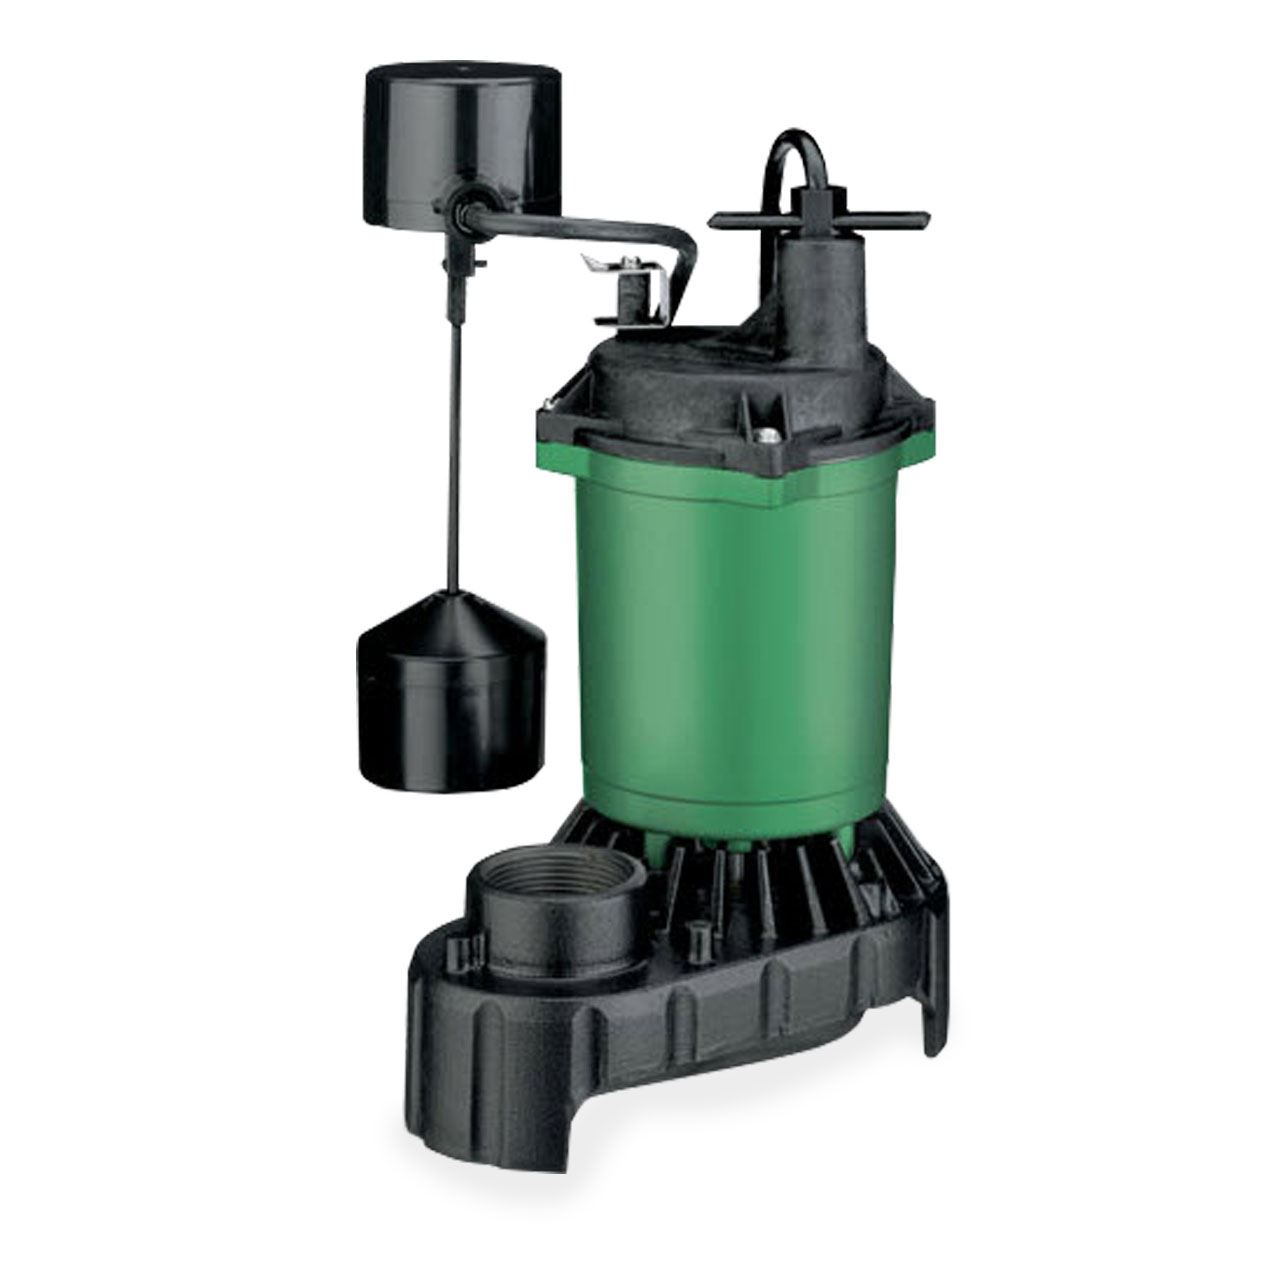 Myers Submersible Sump Pump MS33PV1 0.33 HP 115V 8